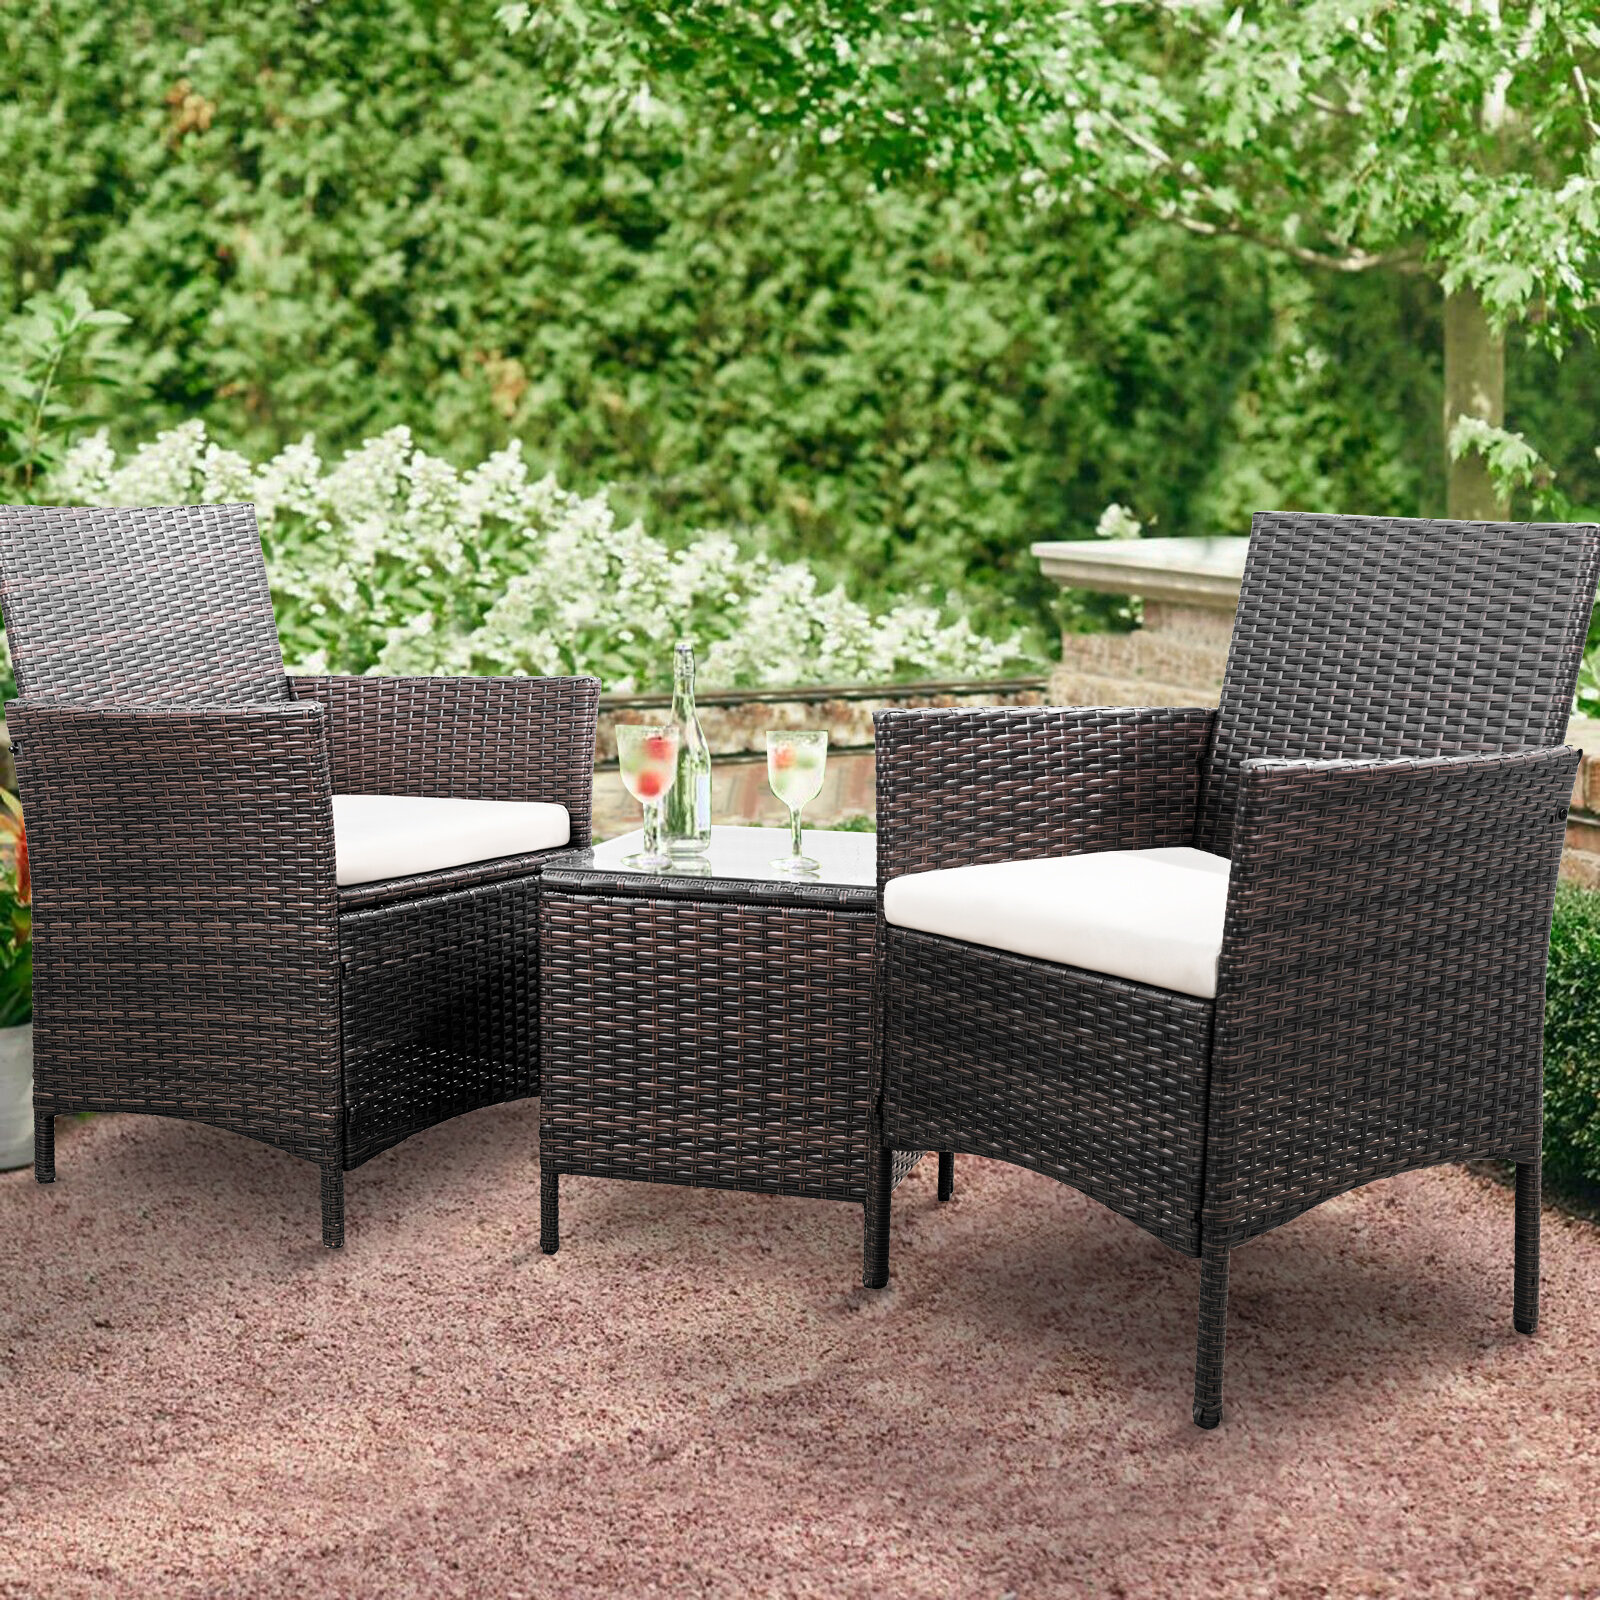 3 Piece Rattan 2 Person Seating Group